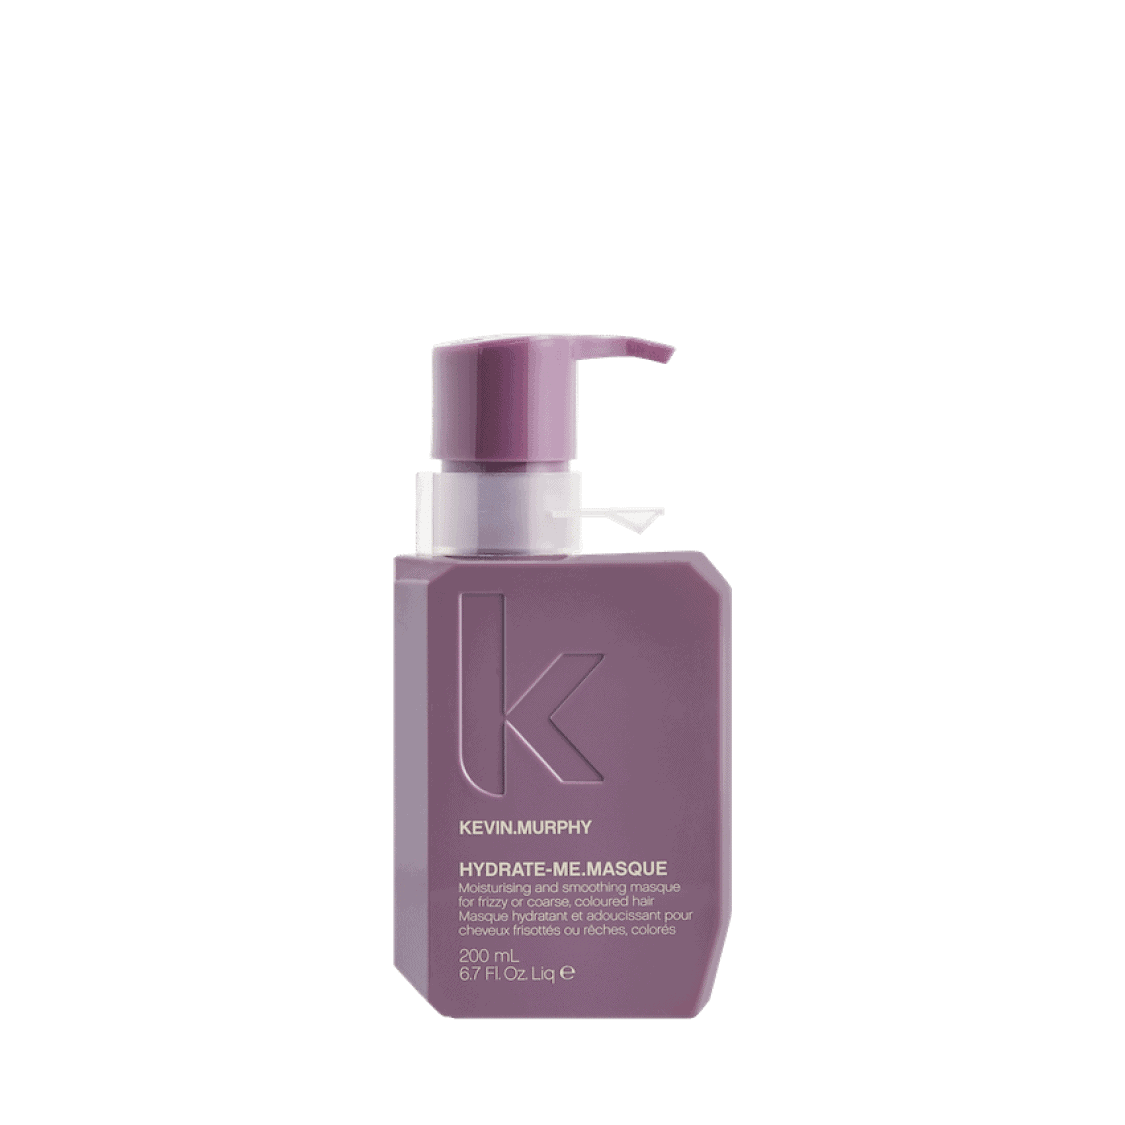 Kevin Murphy - HYDRATE-ME.MASQUE 200ml